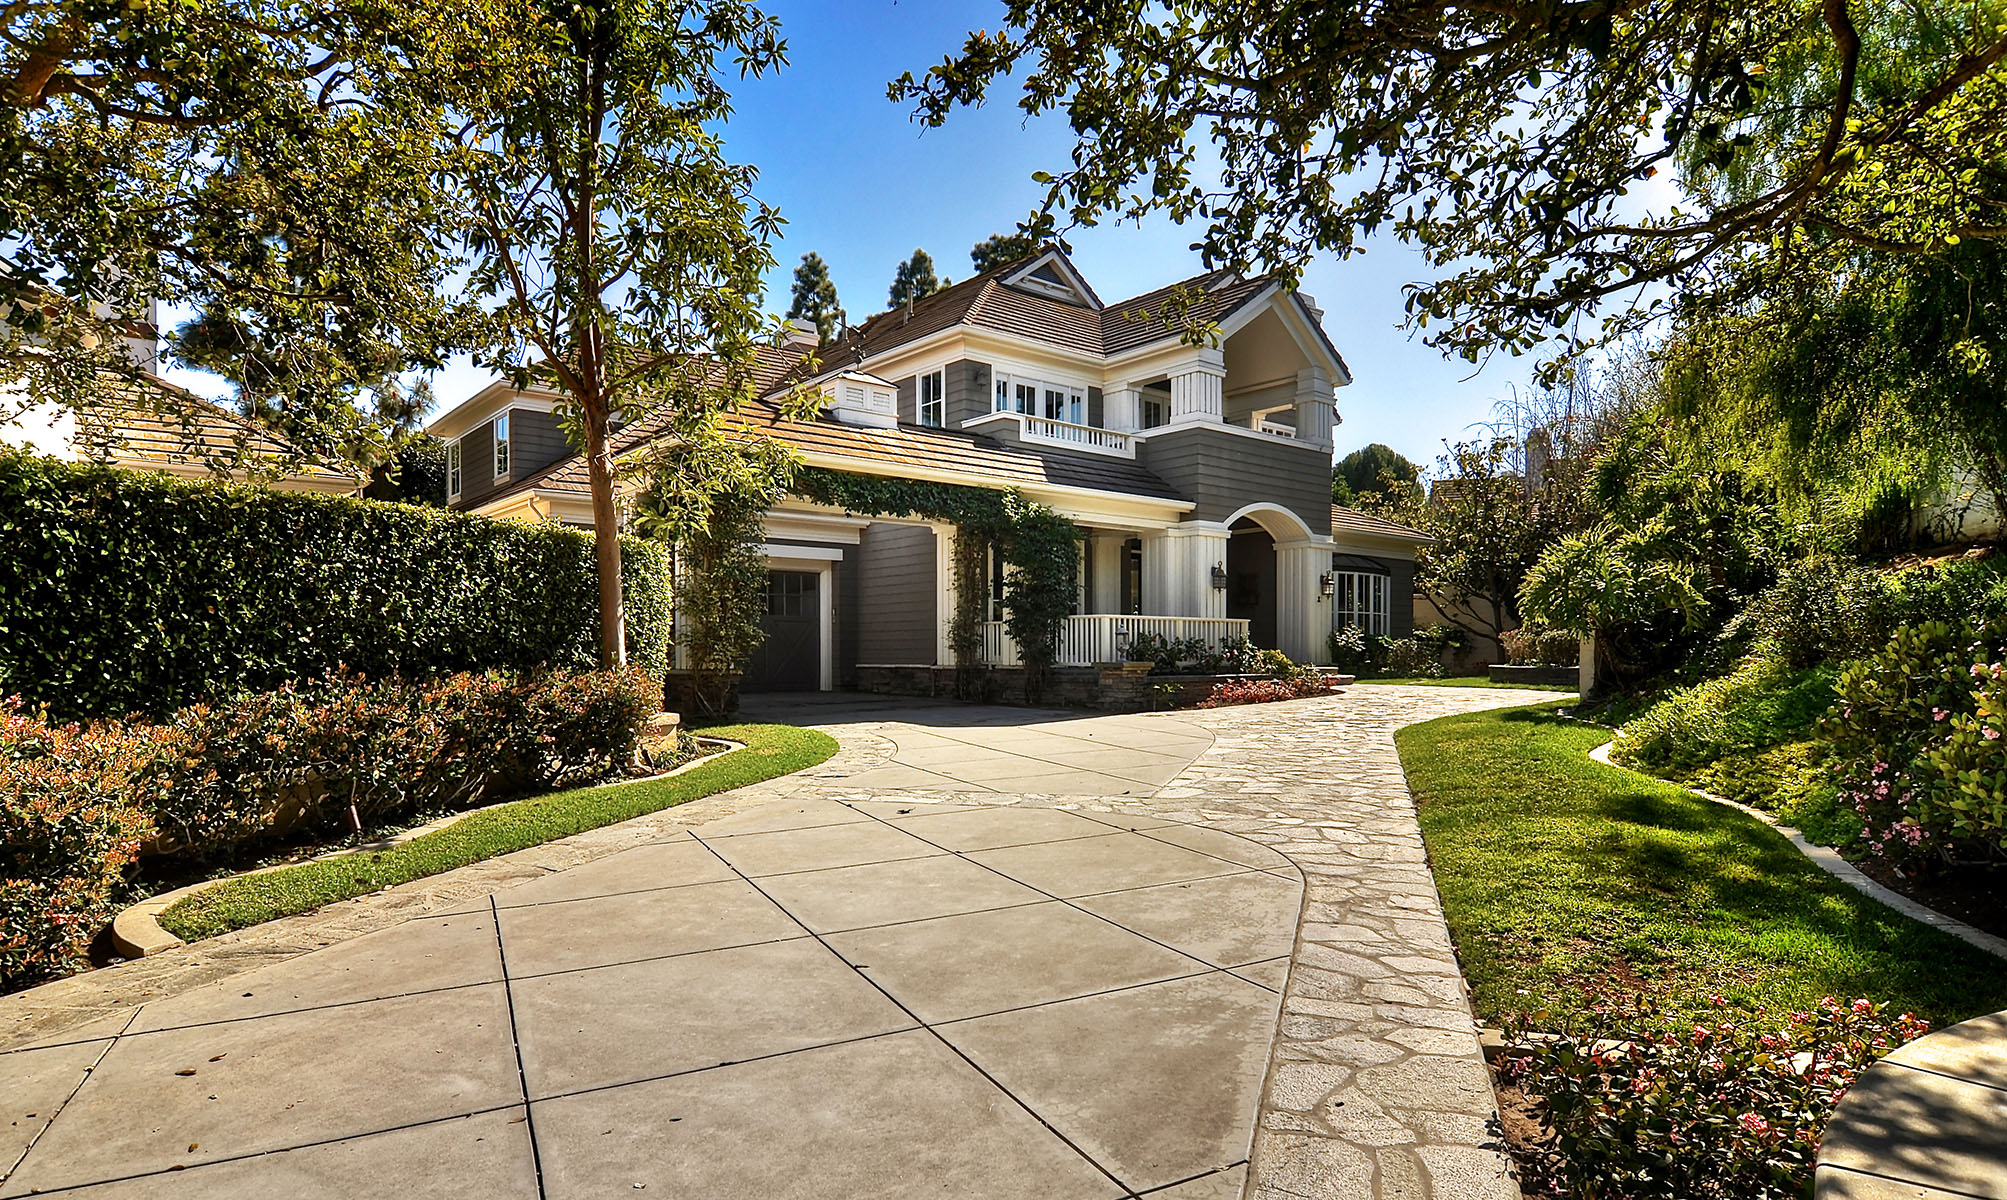 Single Family Home for Sale at 2 Gleneagles Newport Beach, California 92660 United States